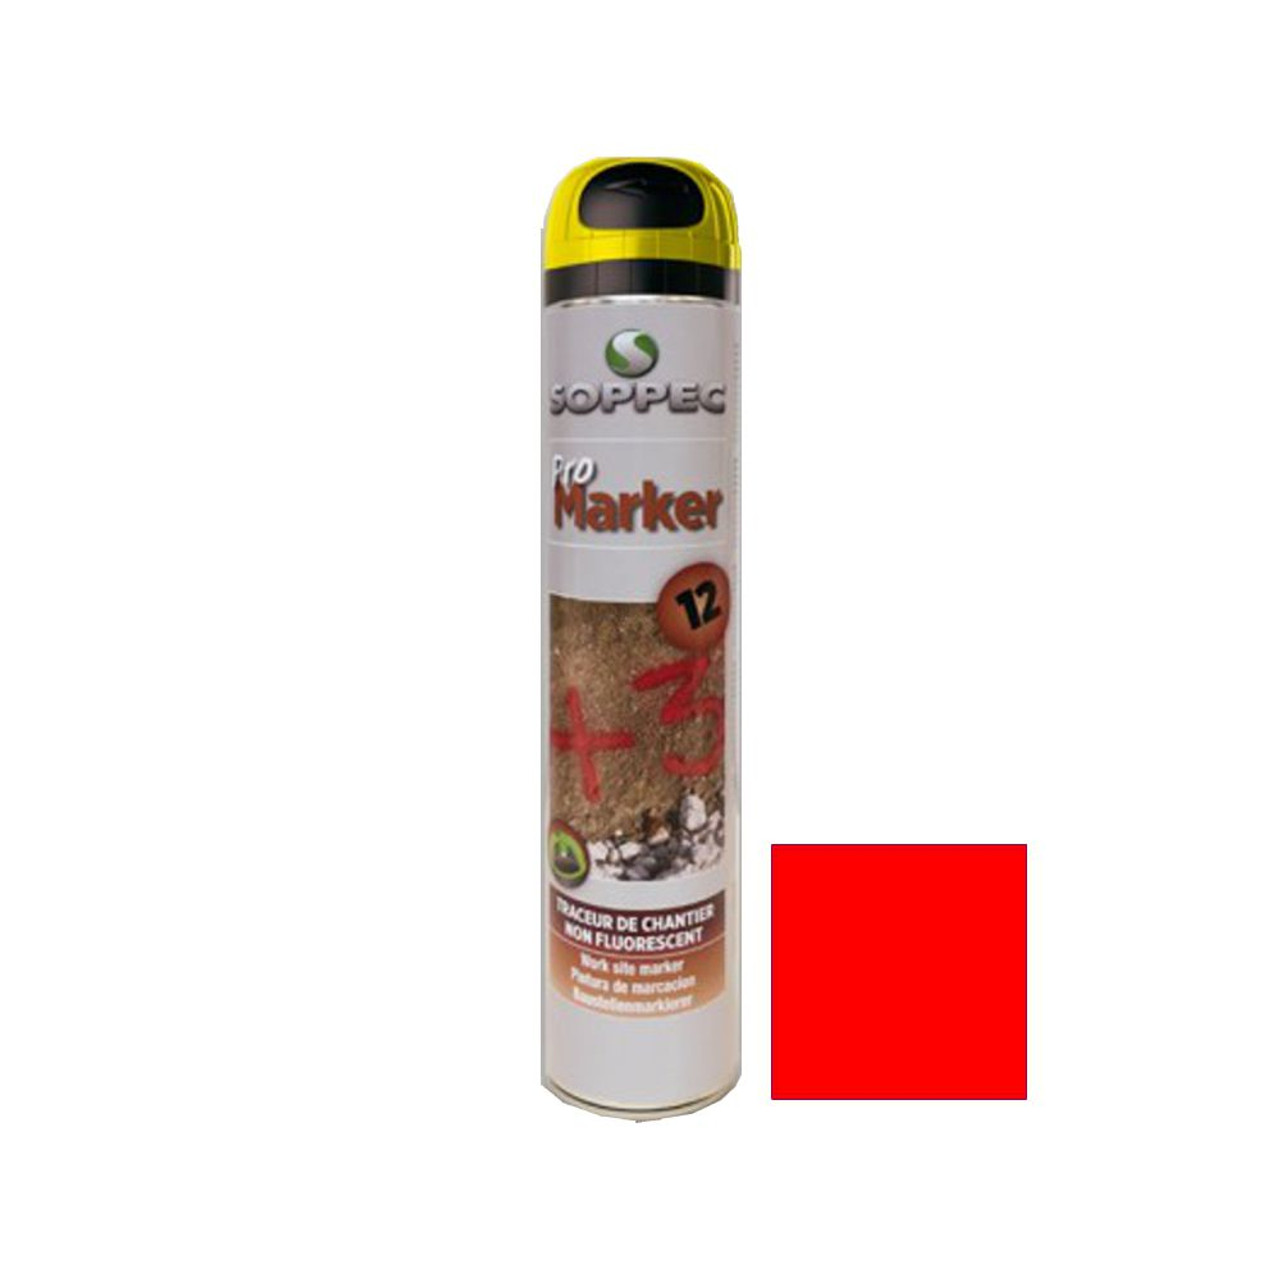 Soppec Spray Paint Promarker Red 750ml (142504N)